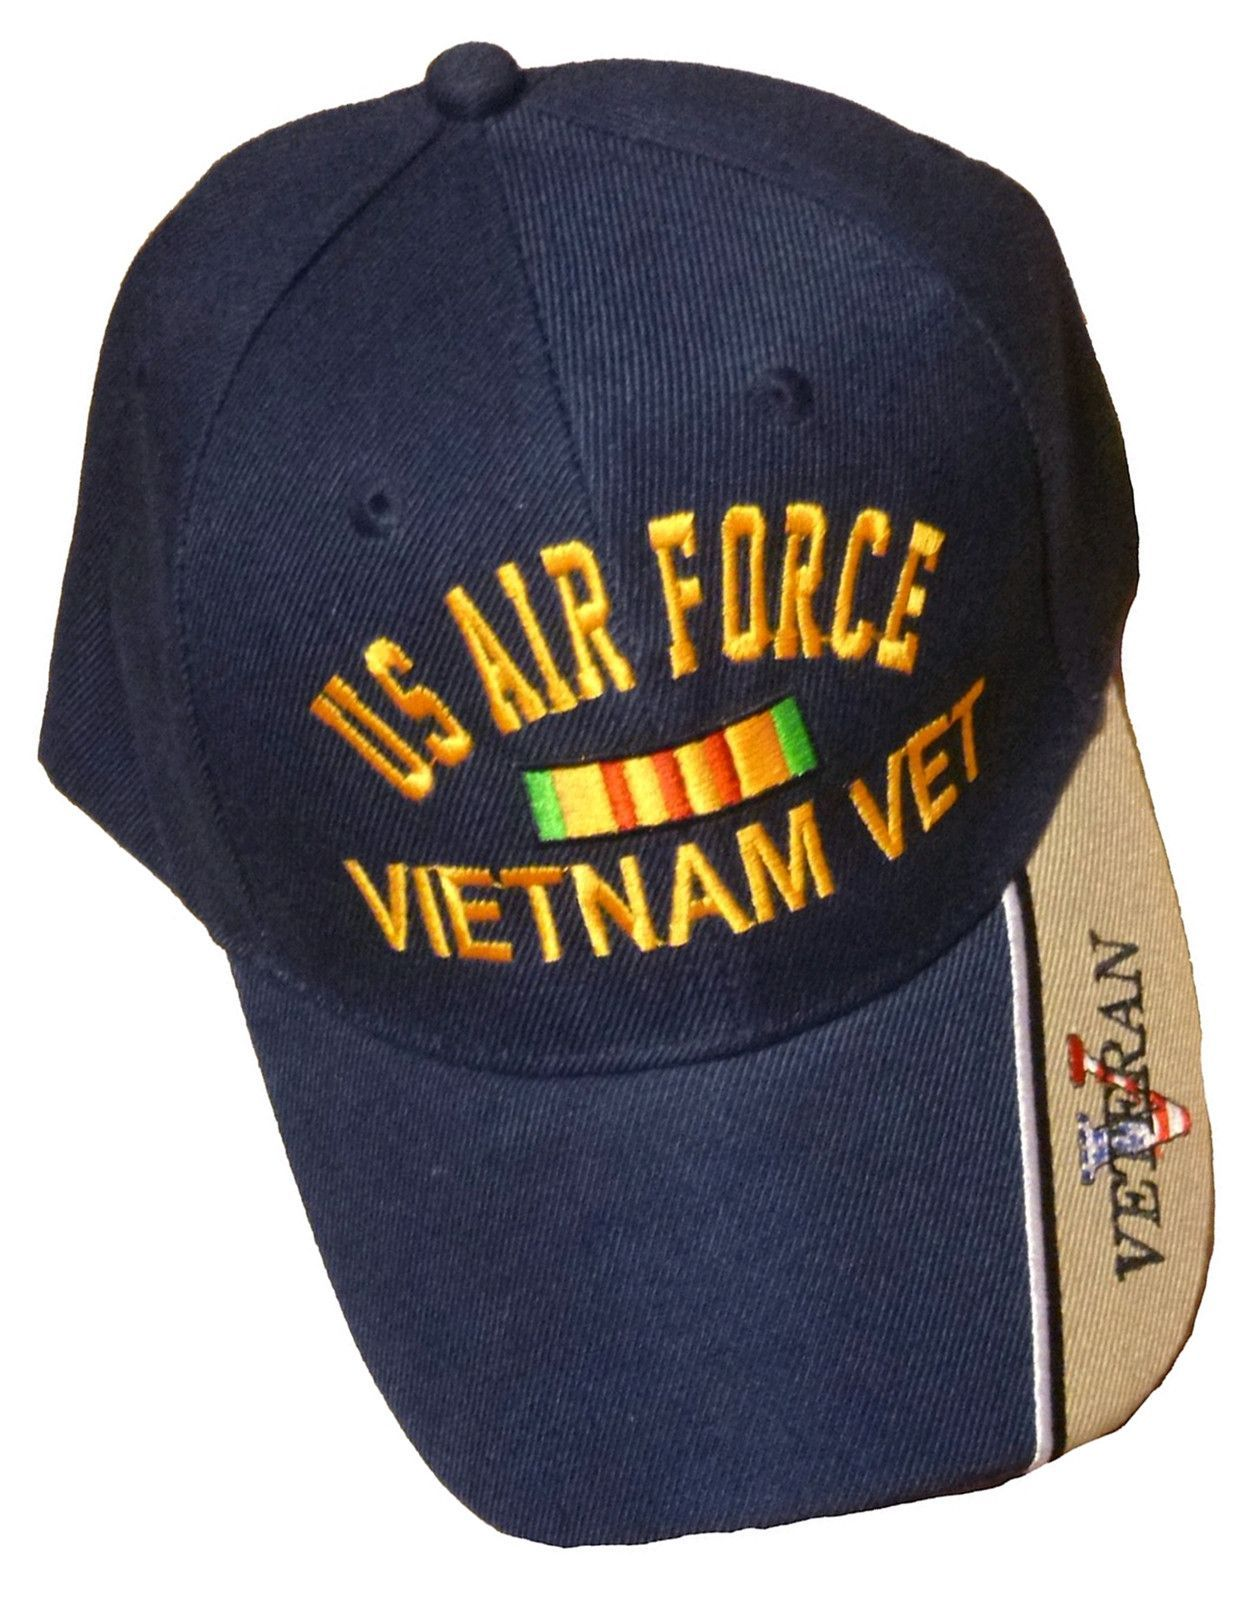 af706272fc6 US Air Force Vietnam Vet Baseball Cap Blue and Tan Embroidered Military  Logo Veteran Hat